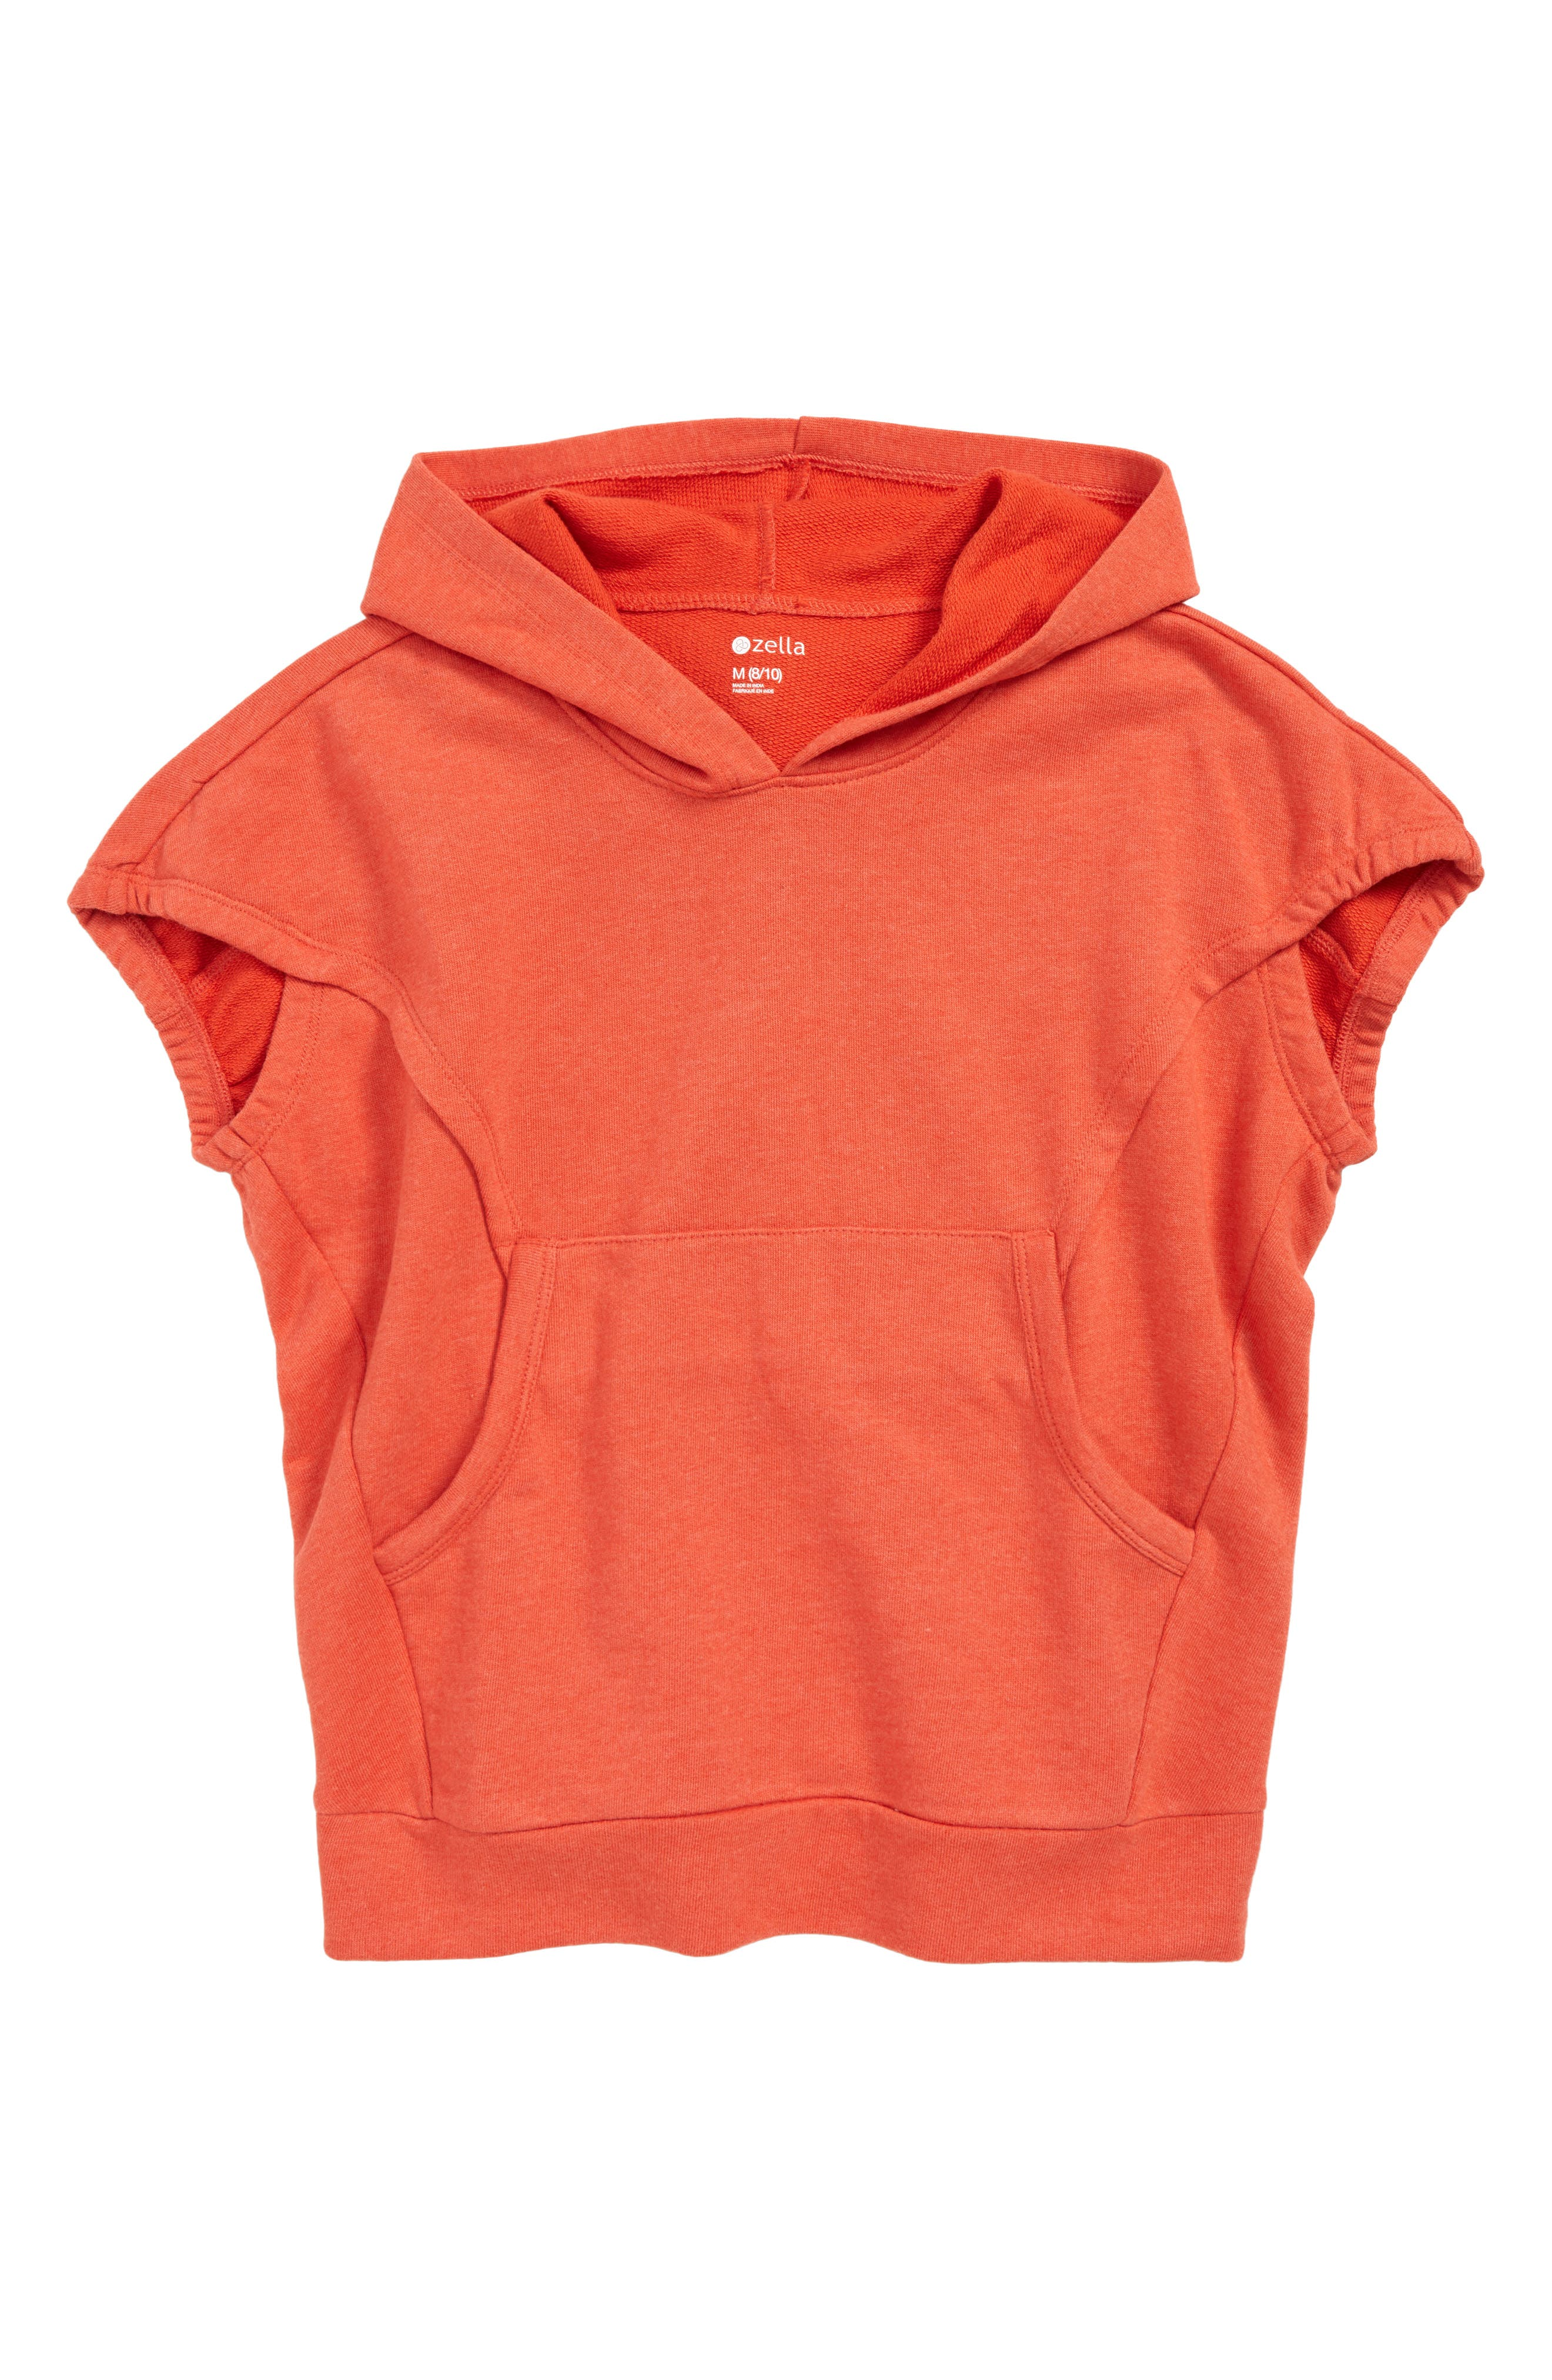 ZELLA GIRL Voyage Hoodie, Main, color, RED POPPY